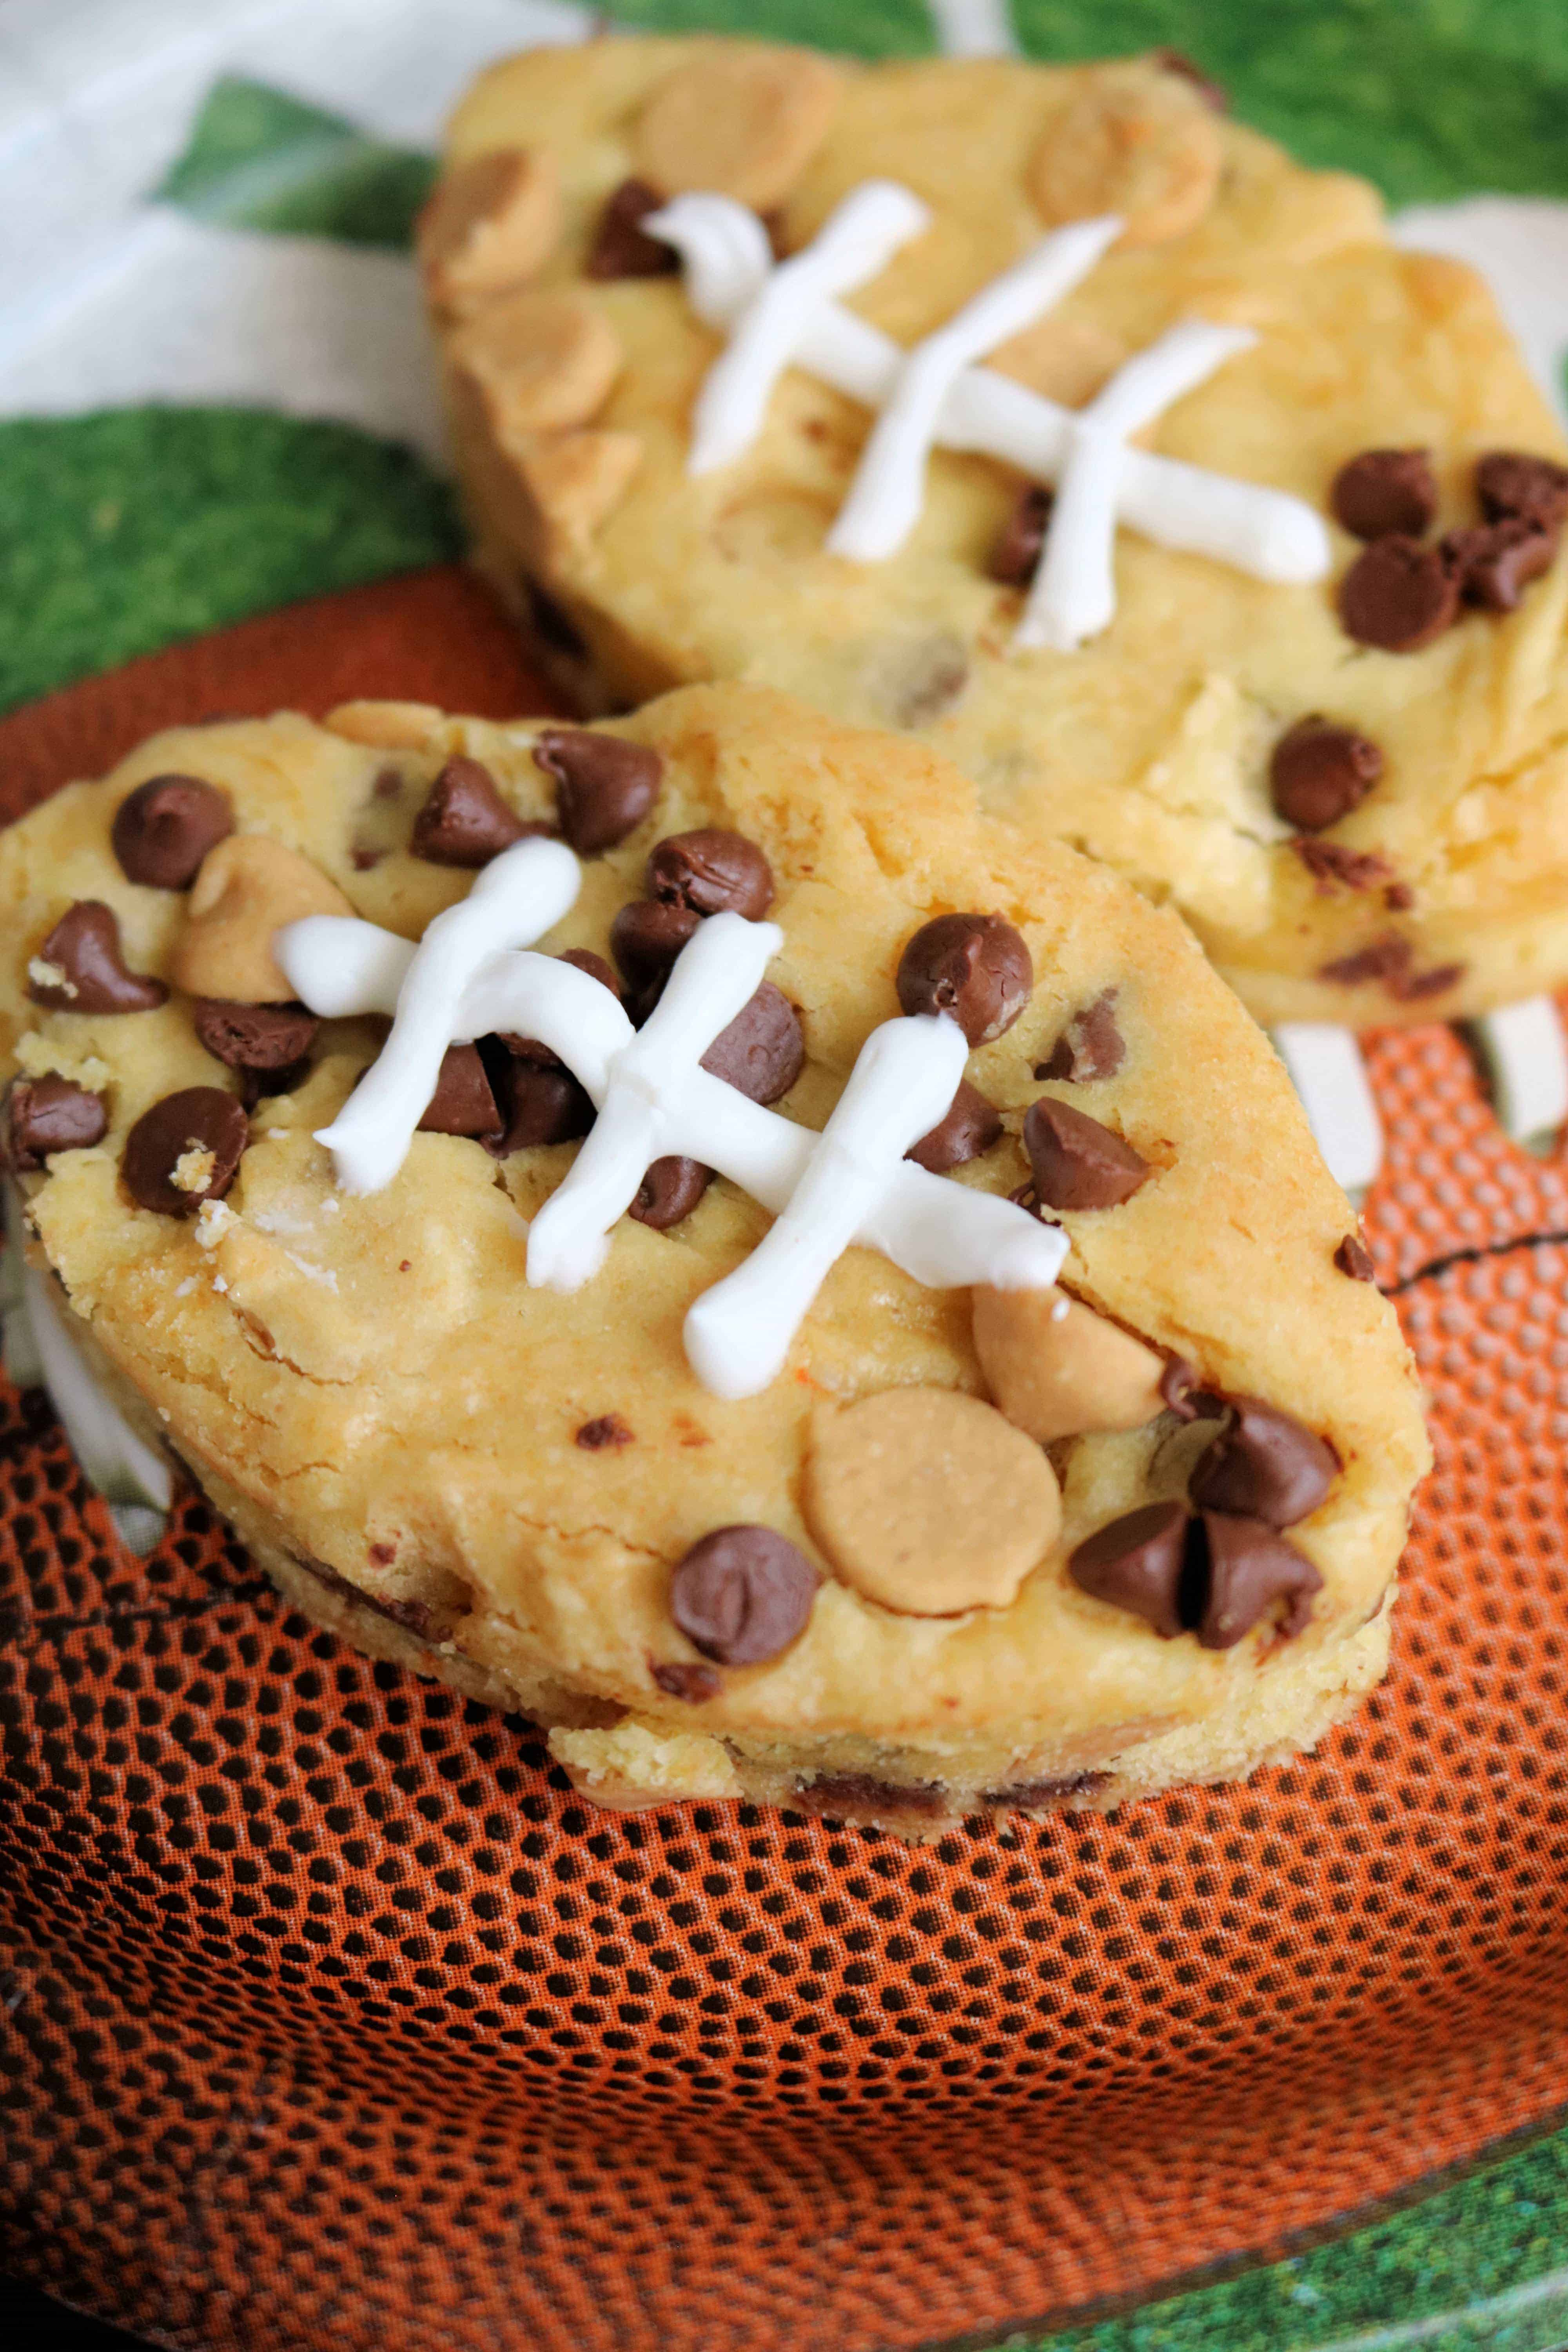 Try these Easy Football Chocolate Chip Peanut Butter Blondies for your next tailgating party! These are the BEST peanut butter blondies and guests will love the cute football shape! #blondies #peanutbutterblondies #footballdesserts #tailgating